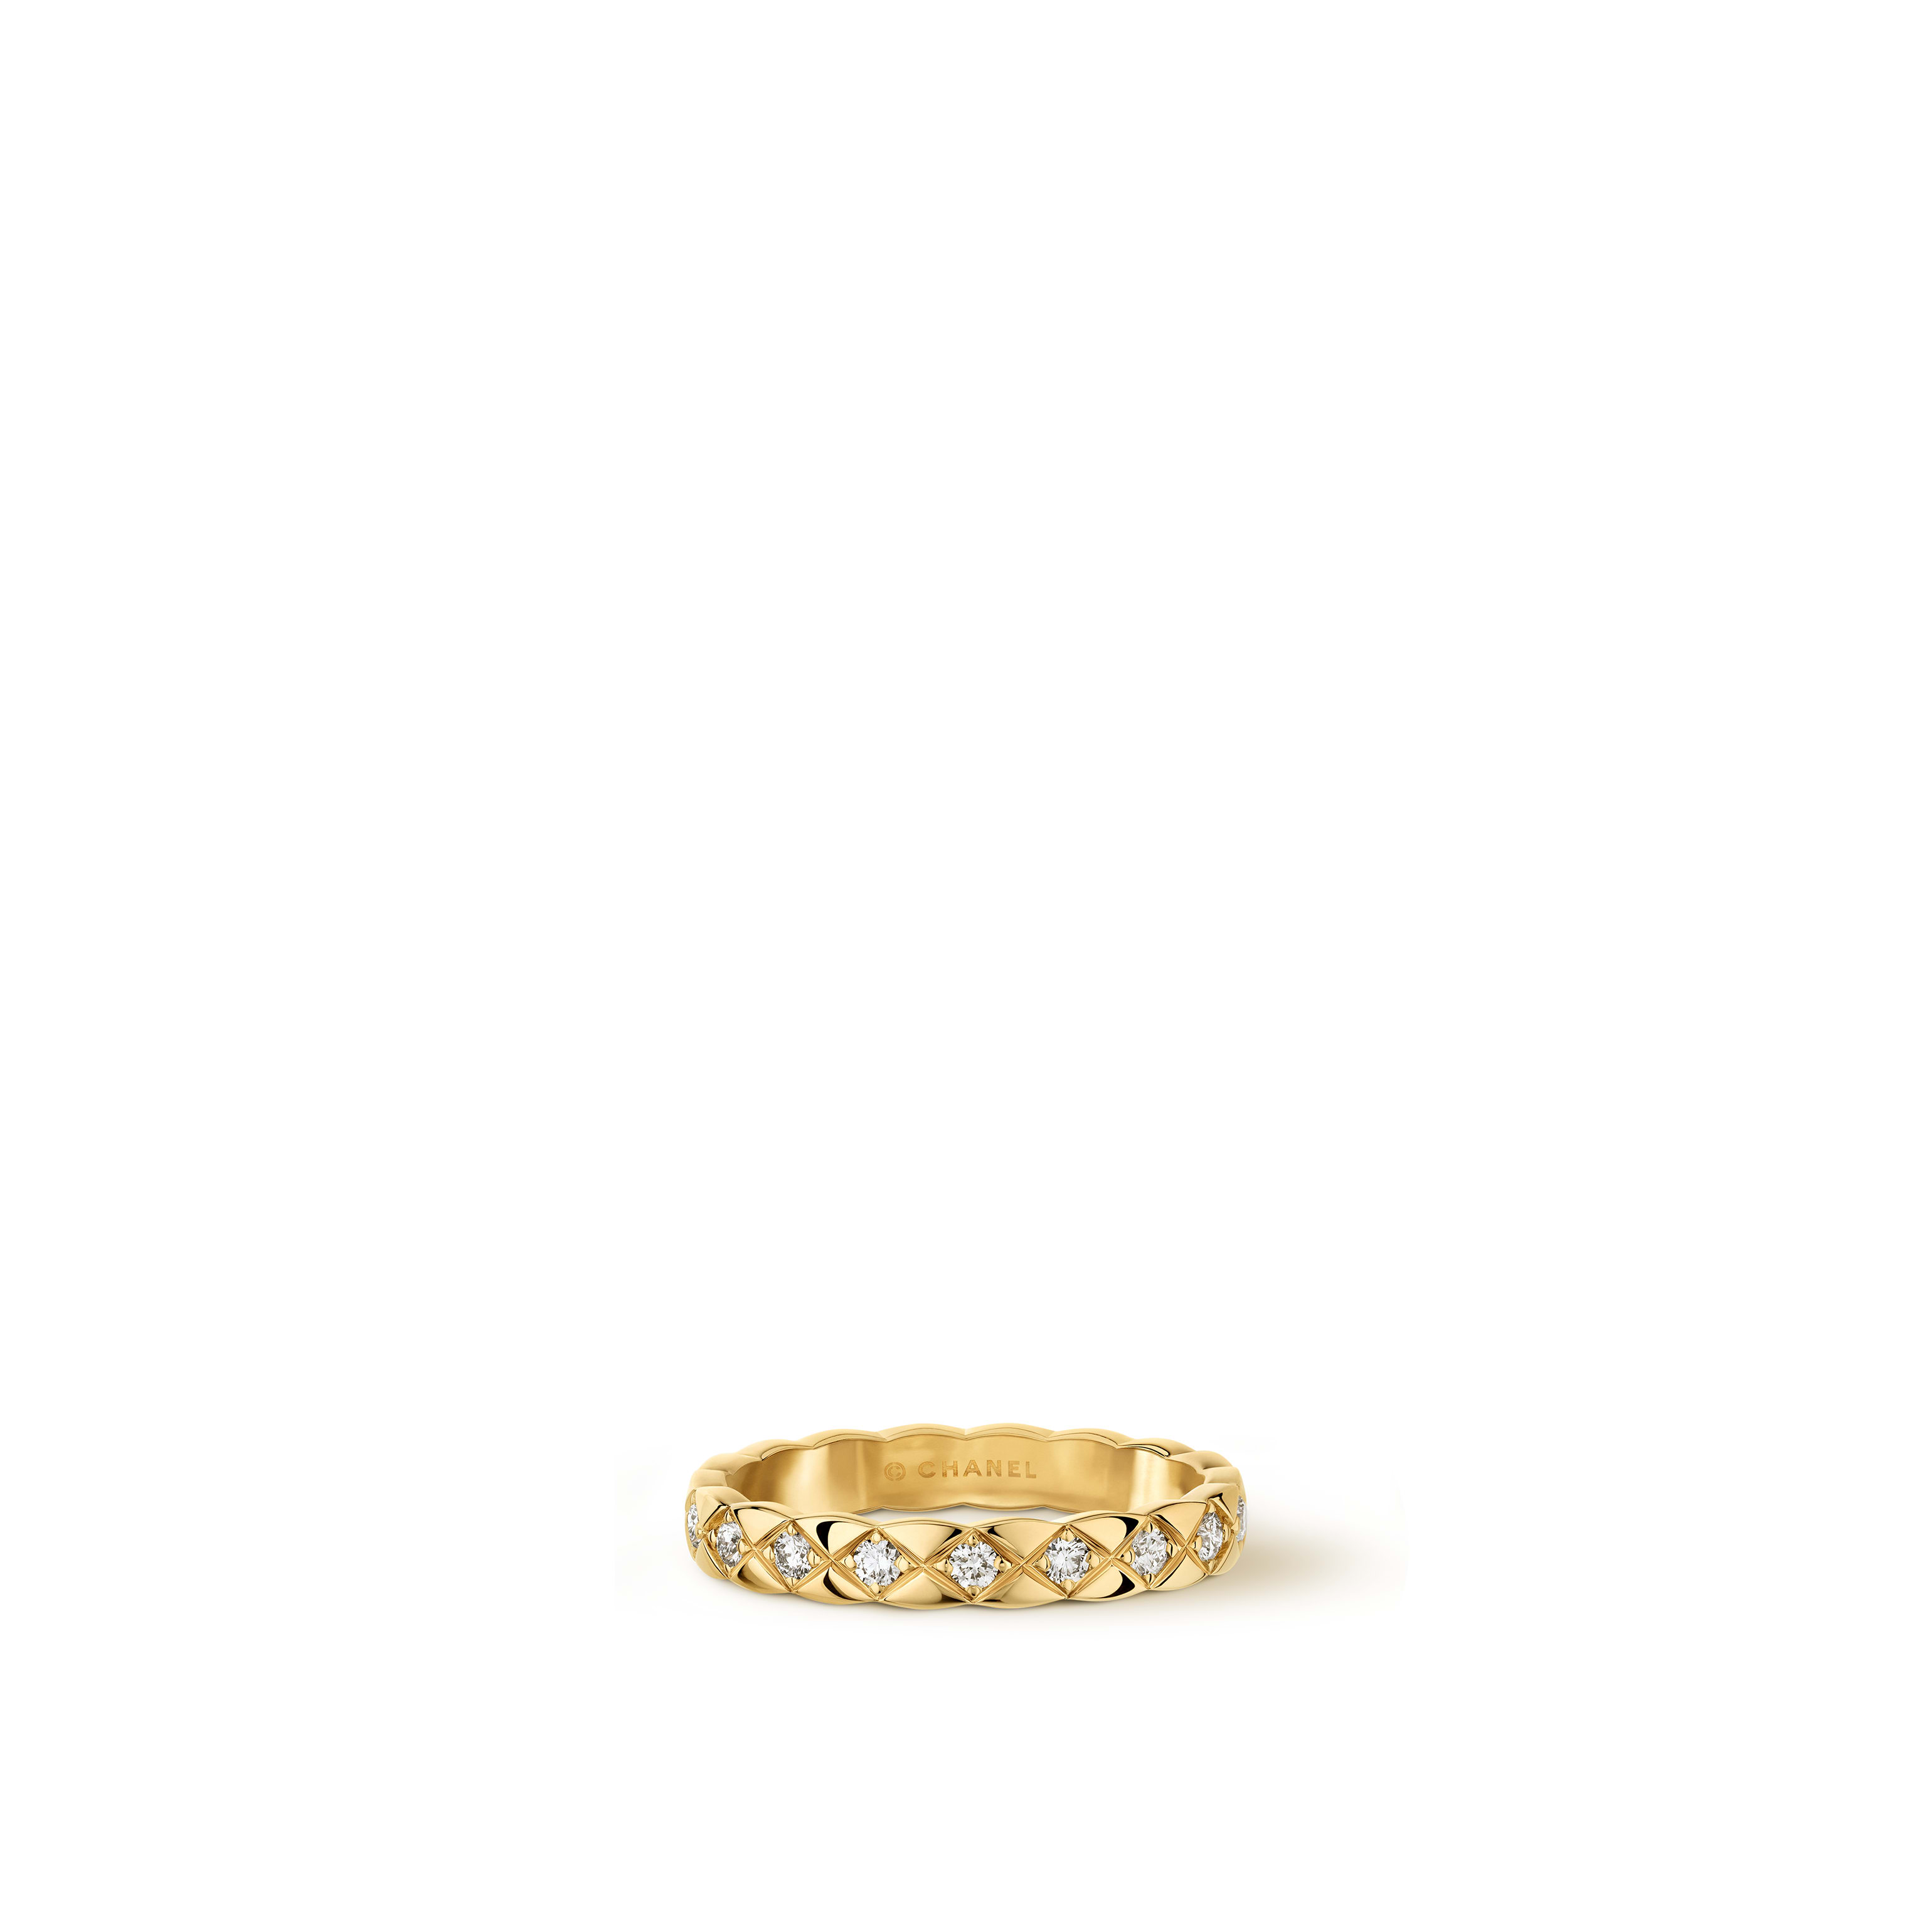 Coco Crush ring - Quilted motif, 18K yellow gold, diamonds. Mini version. - CHANEL - Default view - see standard sized version